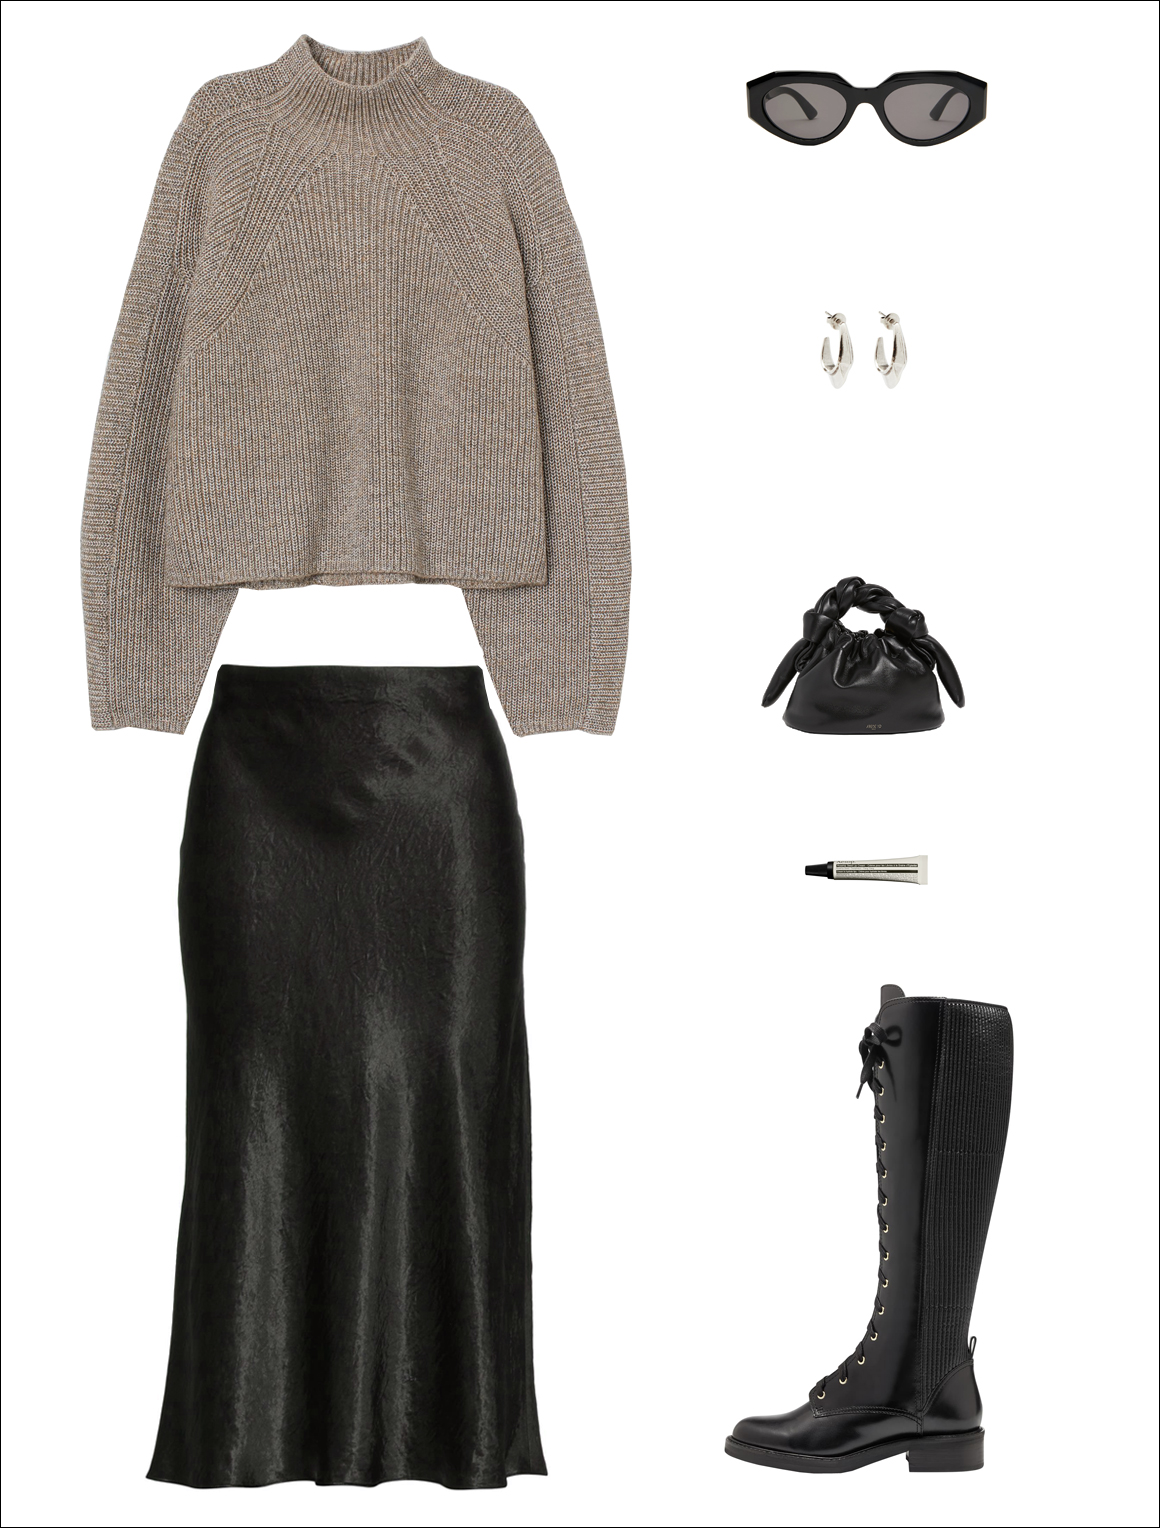 How to Wear a Slip Skirt for Fall and Winter — Under $ 100 turtleneck sweater, Vince black midi satin skirt, black mini knotted bag, Bottega Veneta cat-eye sunglasses, and lace-up knee-high combat boots